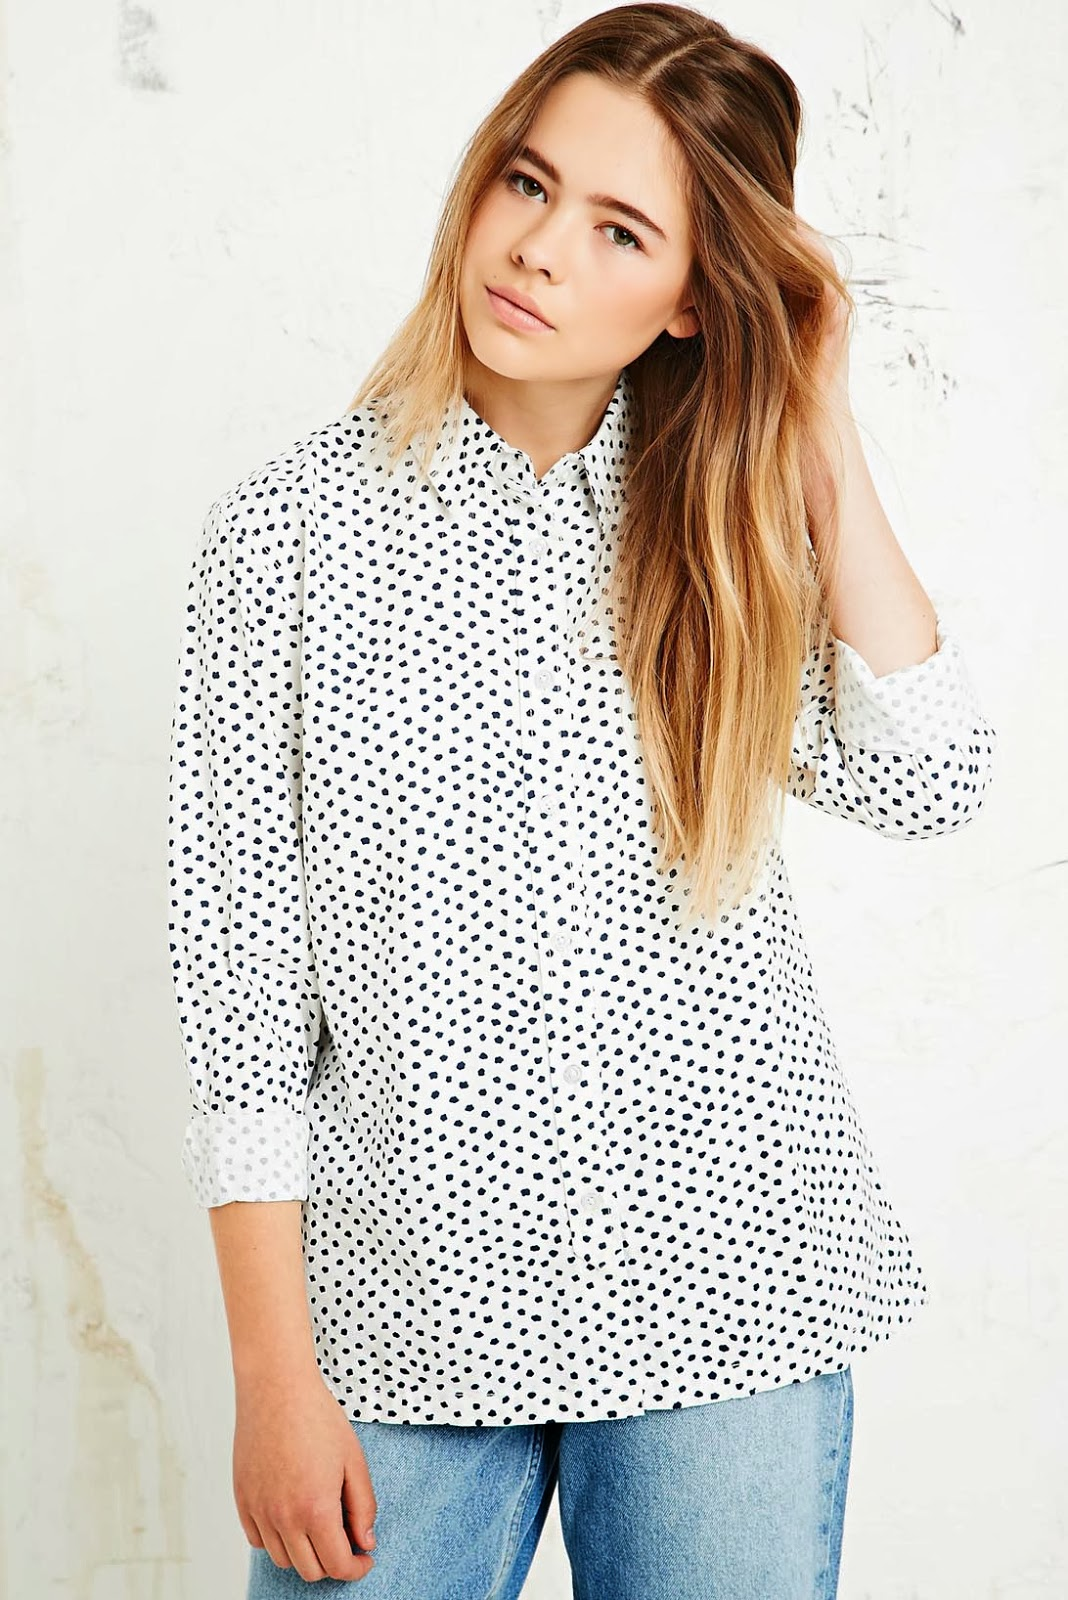 urban outfitters spotty shirt